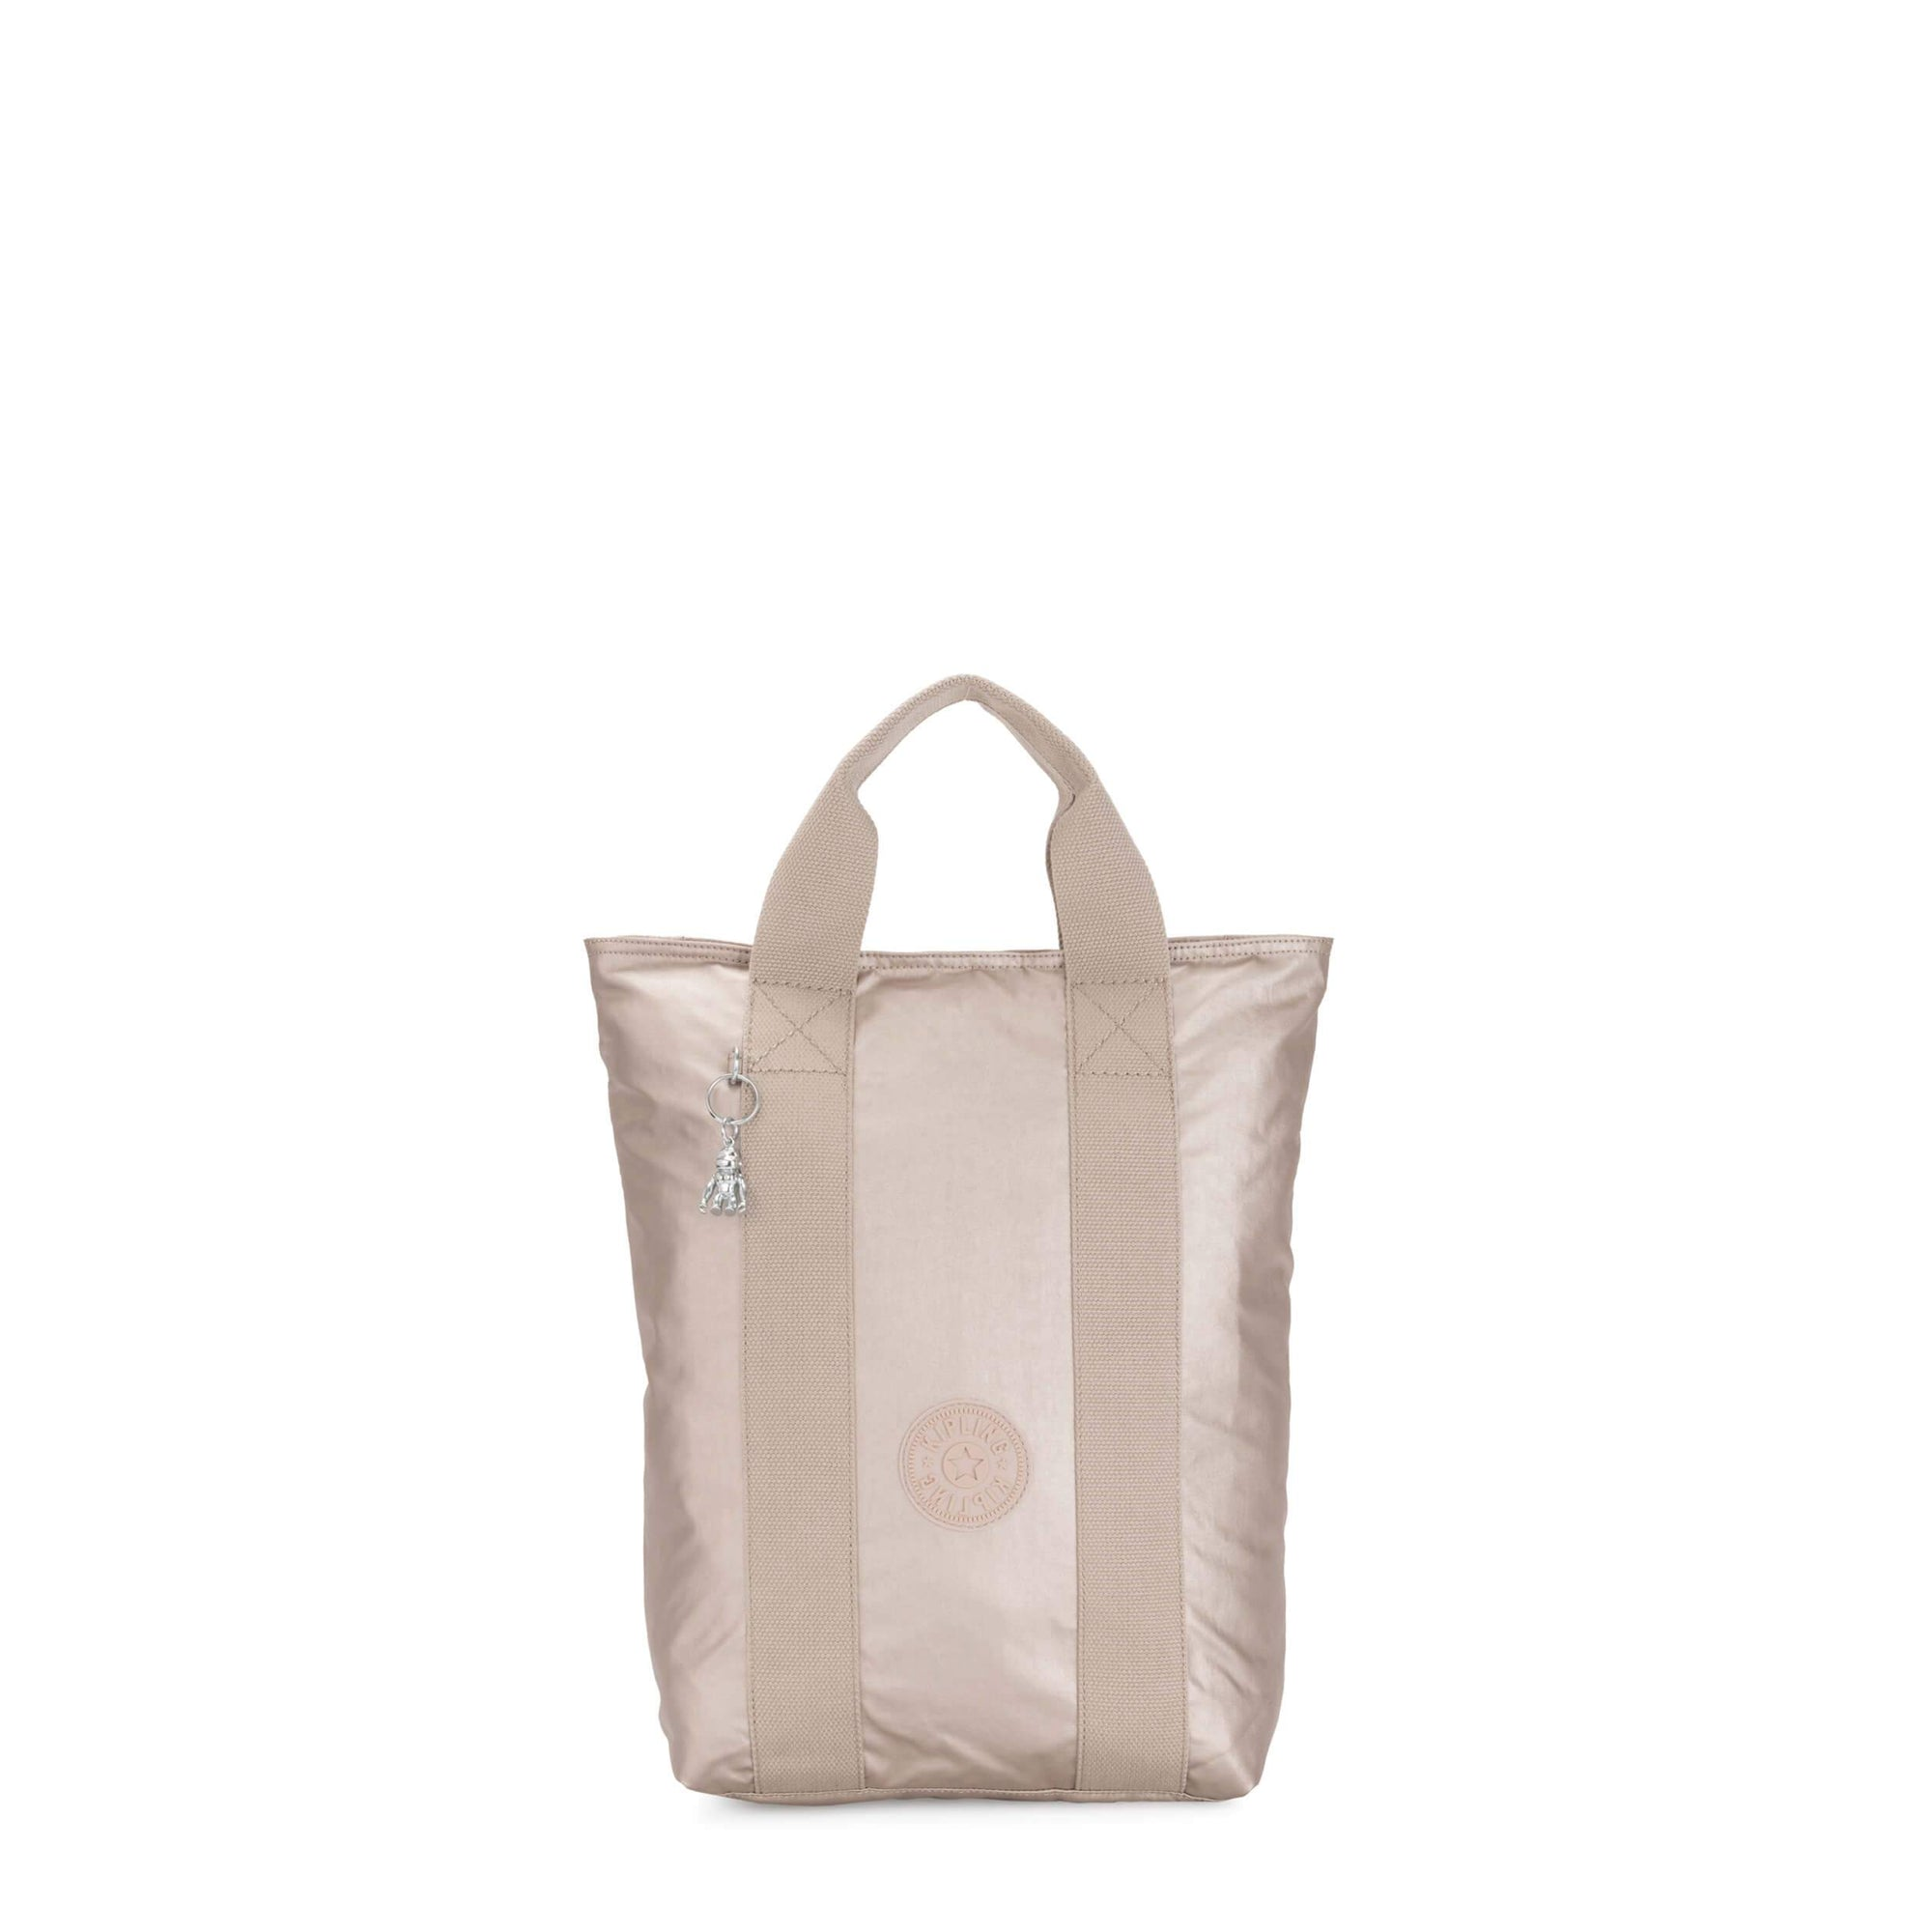 Bolsa Backpack Kipling Dany Metallic Glow O KI5941P24